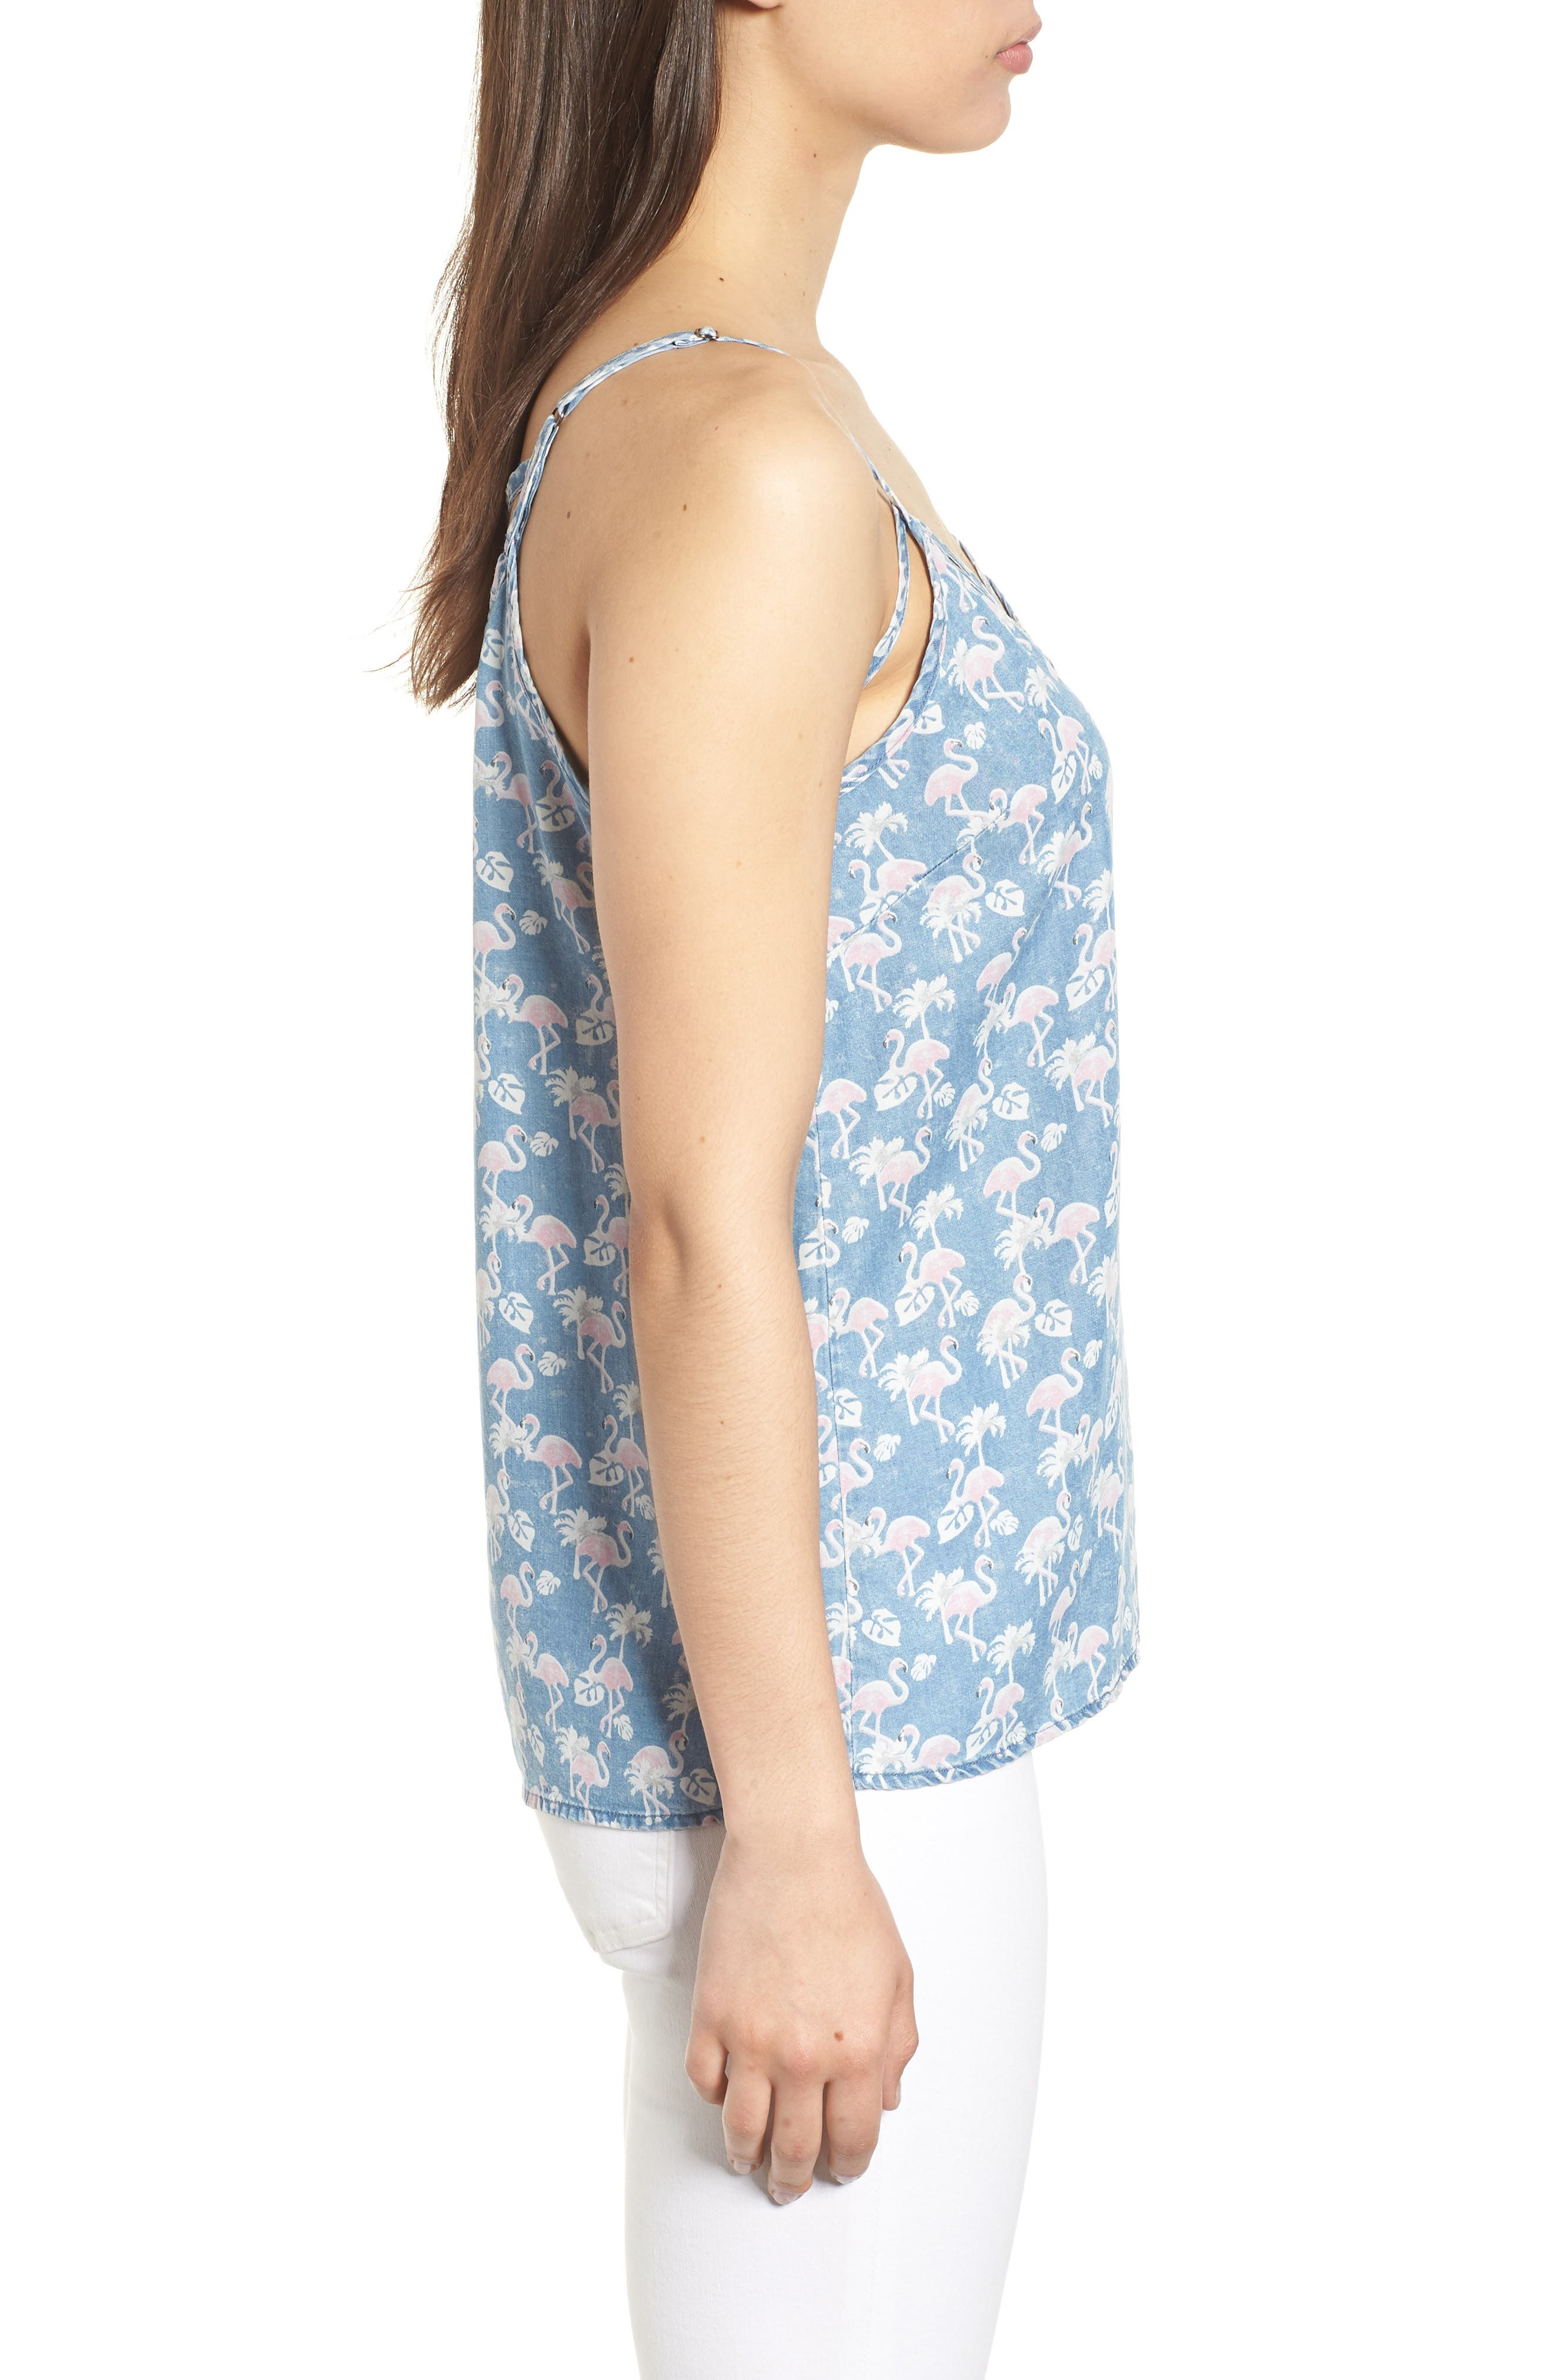 Pink Flamingo Camisole Top,                             Alternate thumbnail 3, color,